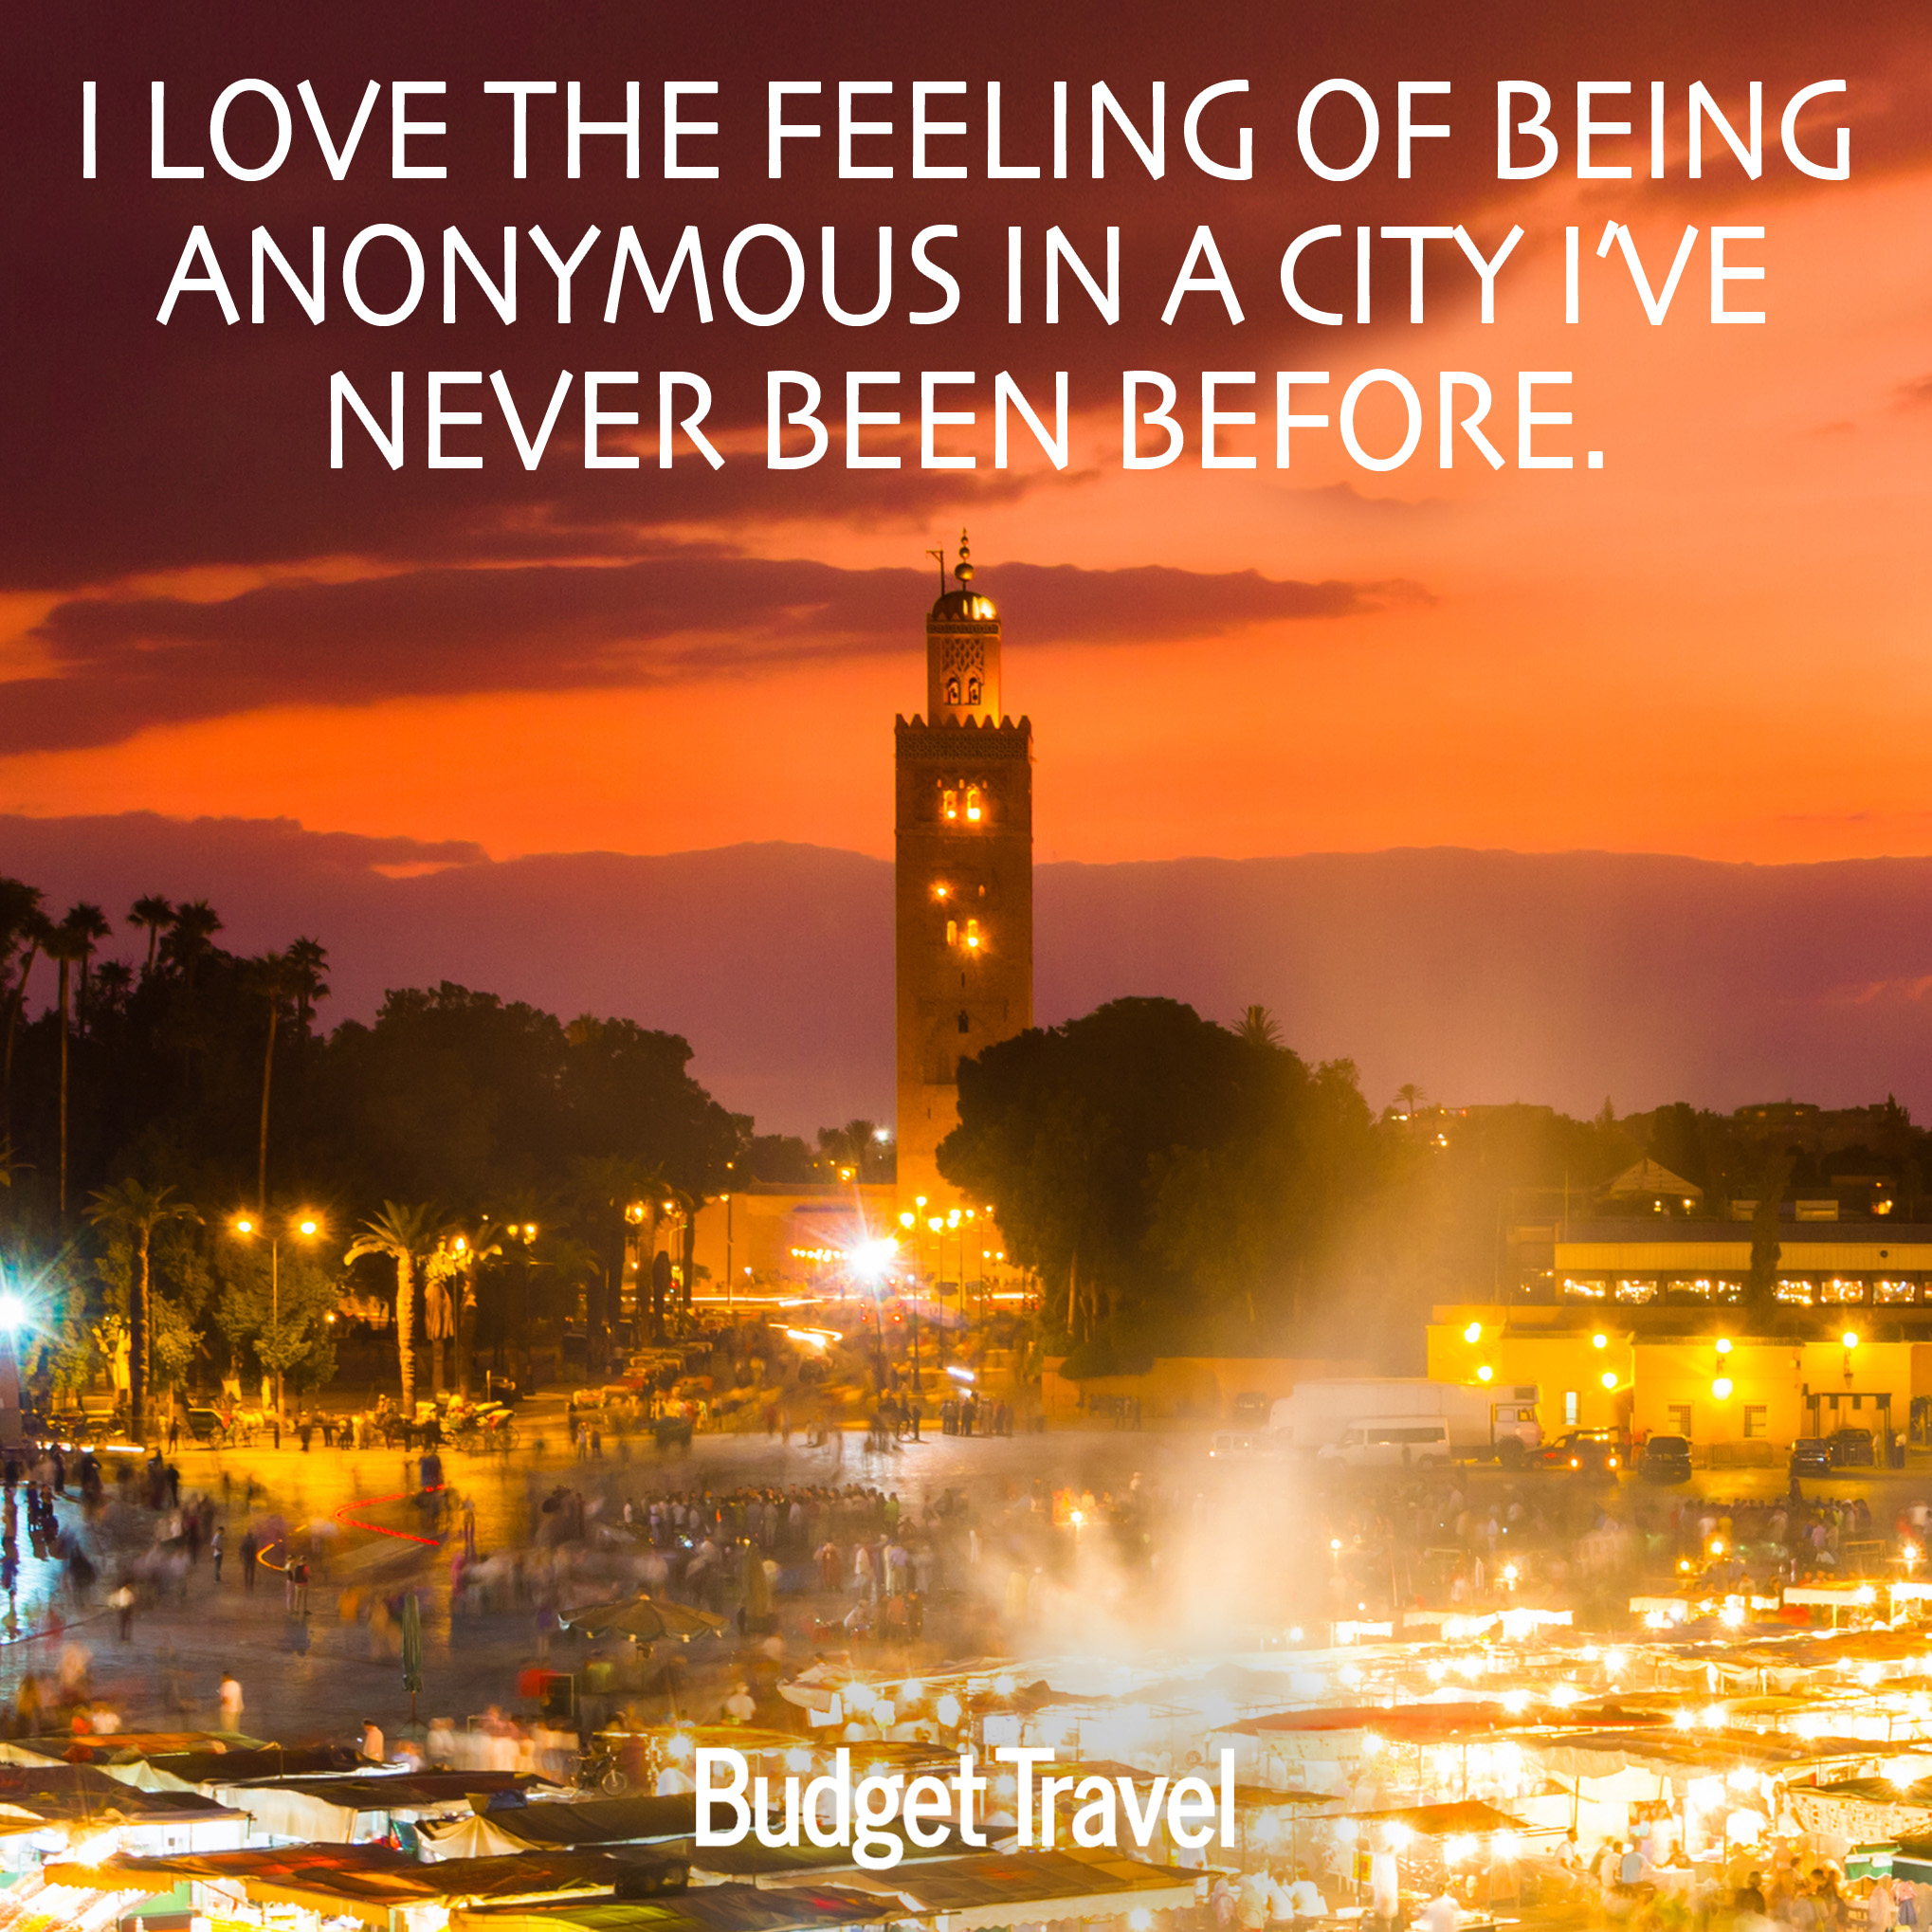 i-love-the-feeling-travel-quote-472015-19730_original